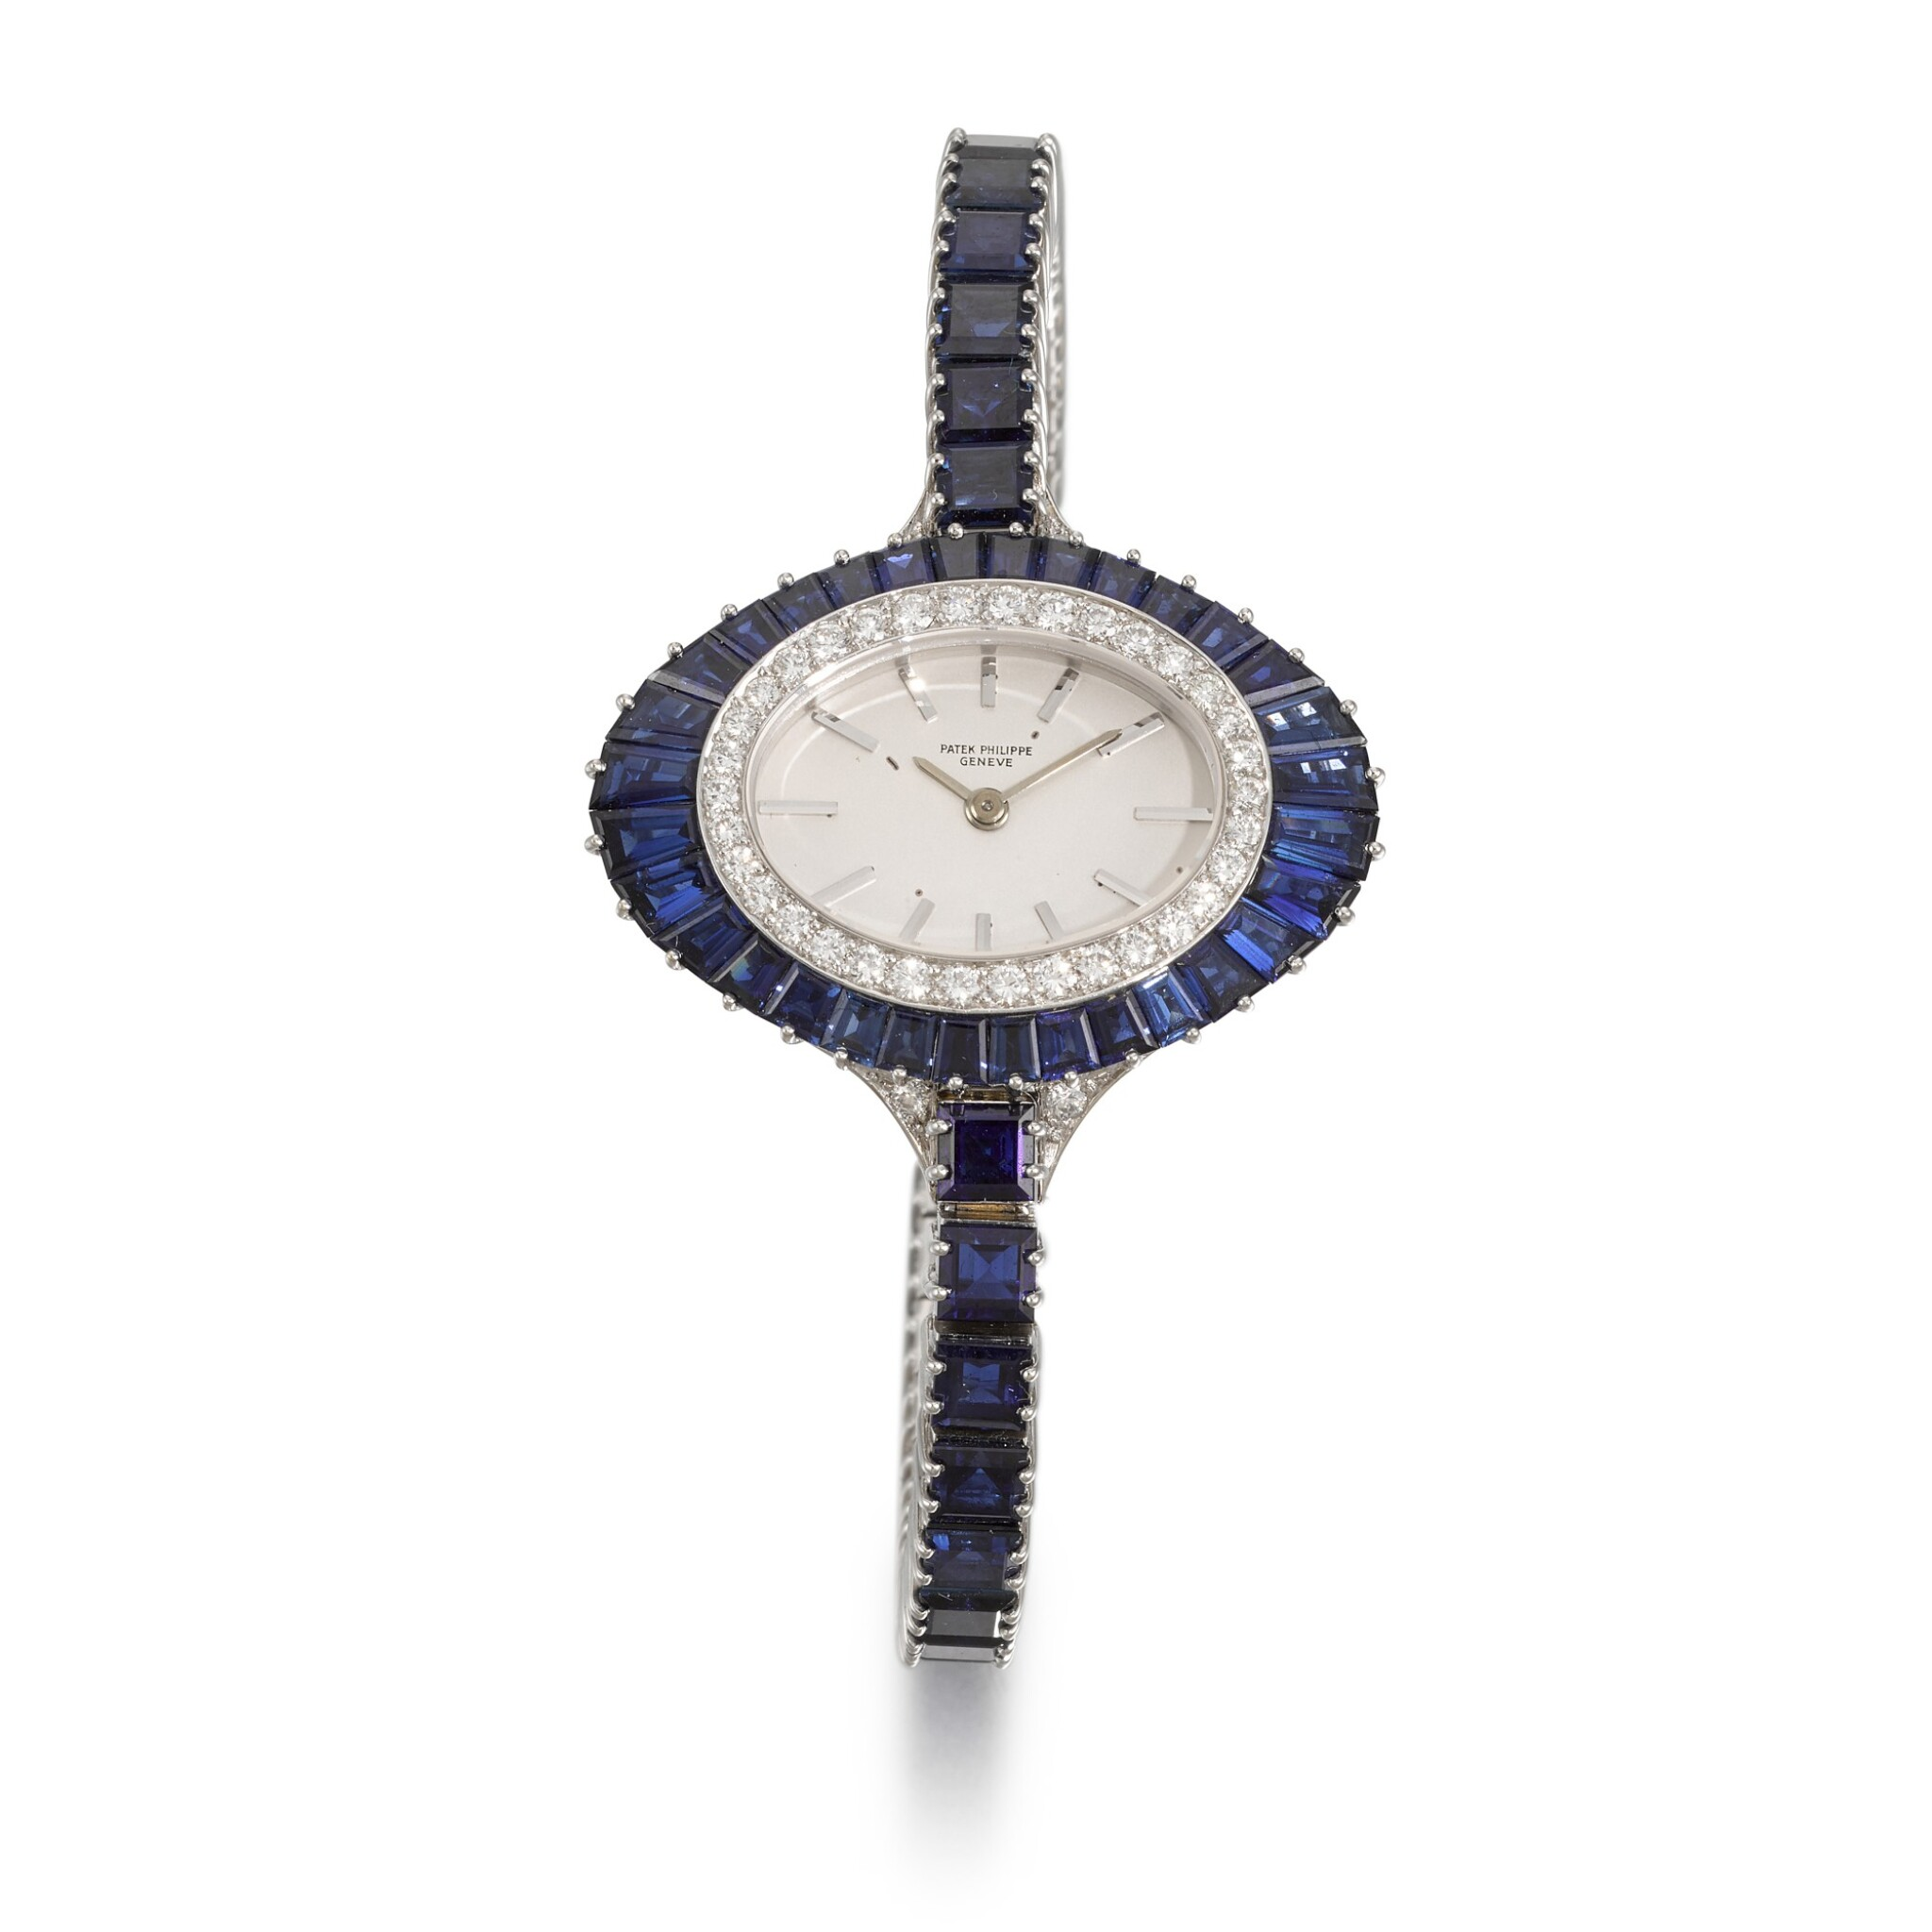 View full screen - View 1 of Lot 319. PATEK PHILIPPE | REFERENCE 4020/1, WHITE GOLD, DIAMOND AND SAPPHIRE-SET BRACELET WATCH, MADE IN 1973.